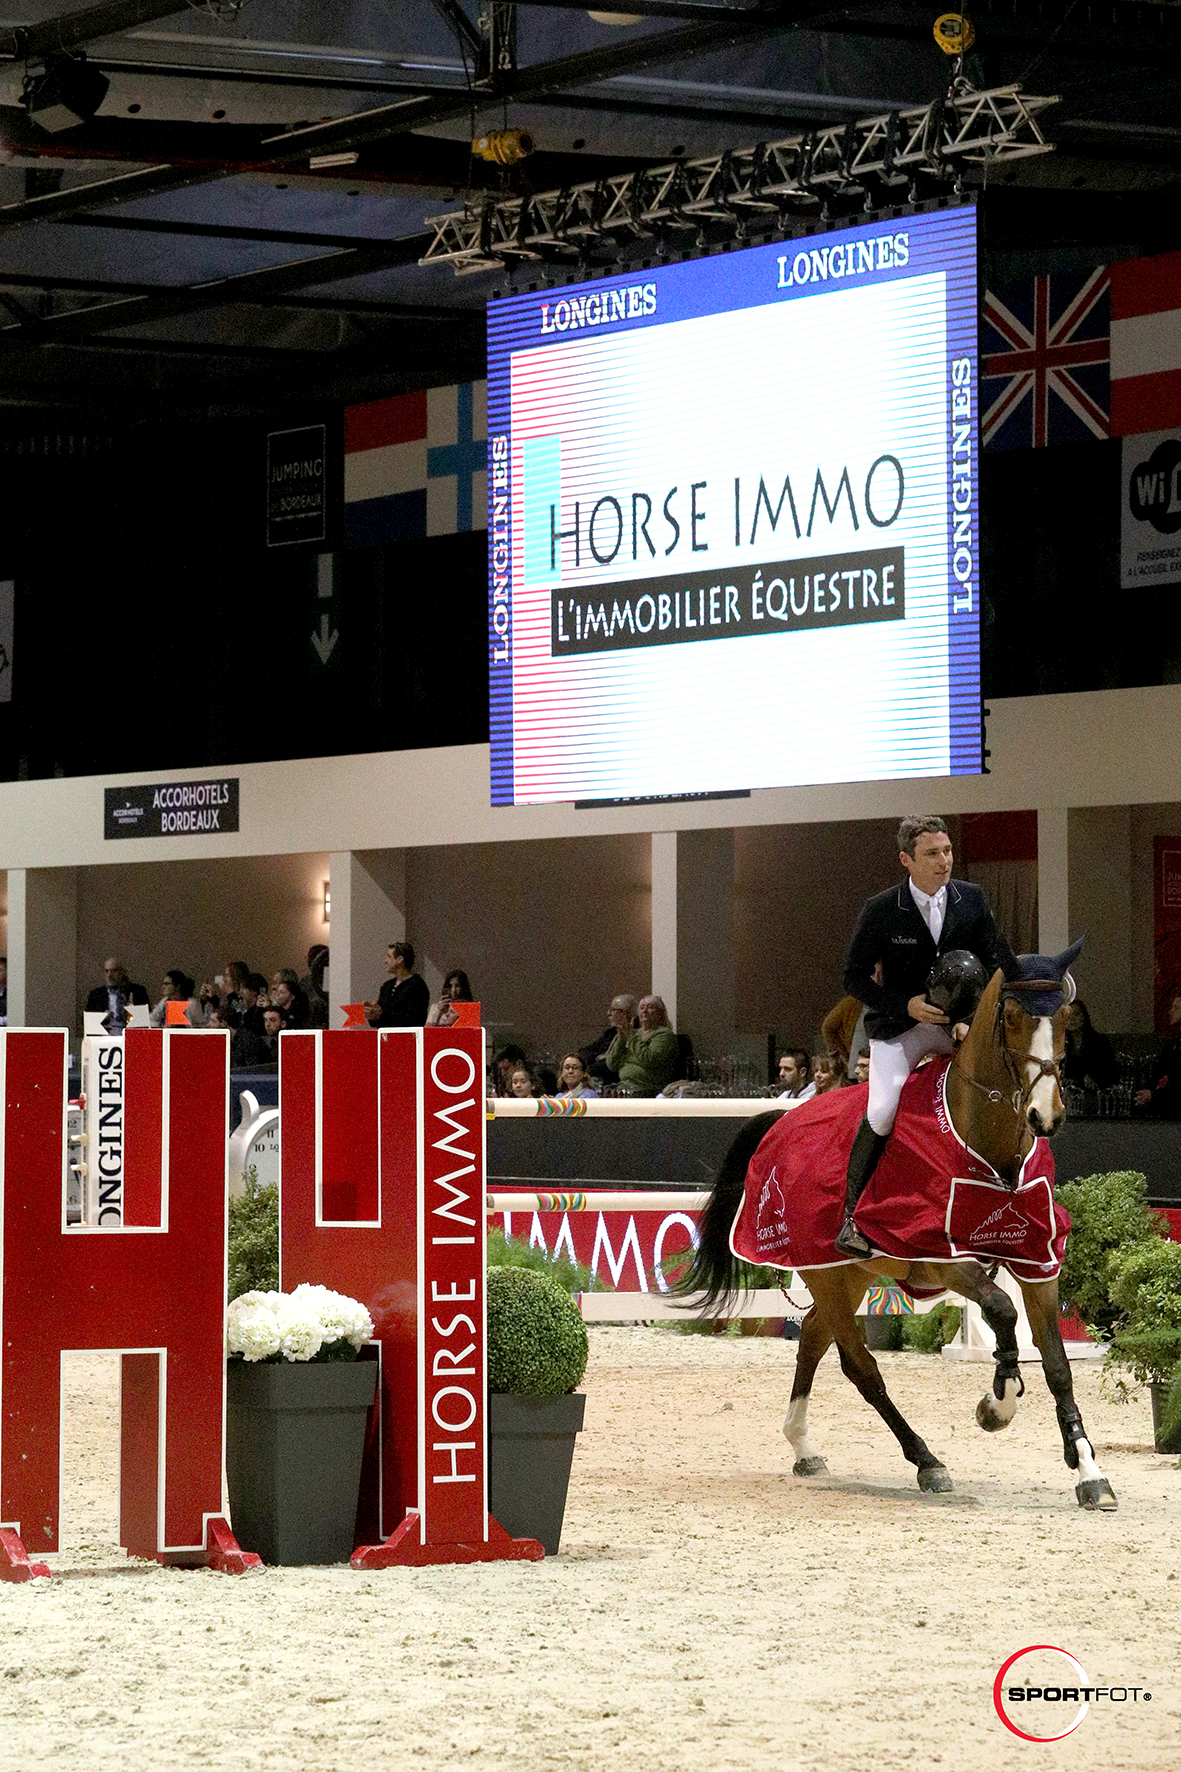 07/02/2019 ; Bordeaux ; Bordeaux International Jumping ; saturday csi5 1m45 ; presentation ; Sportfot